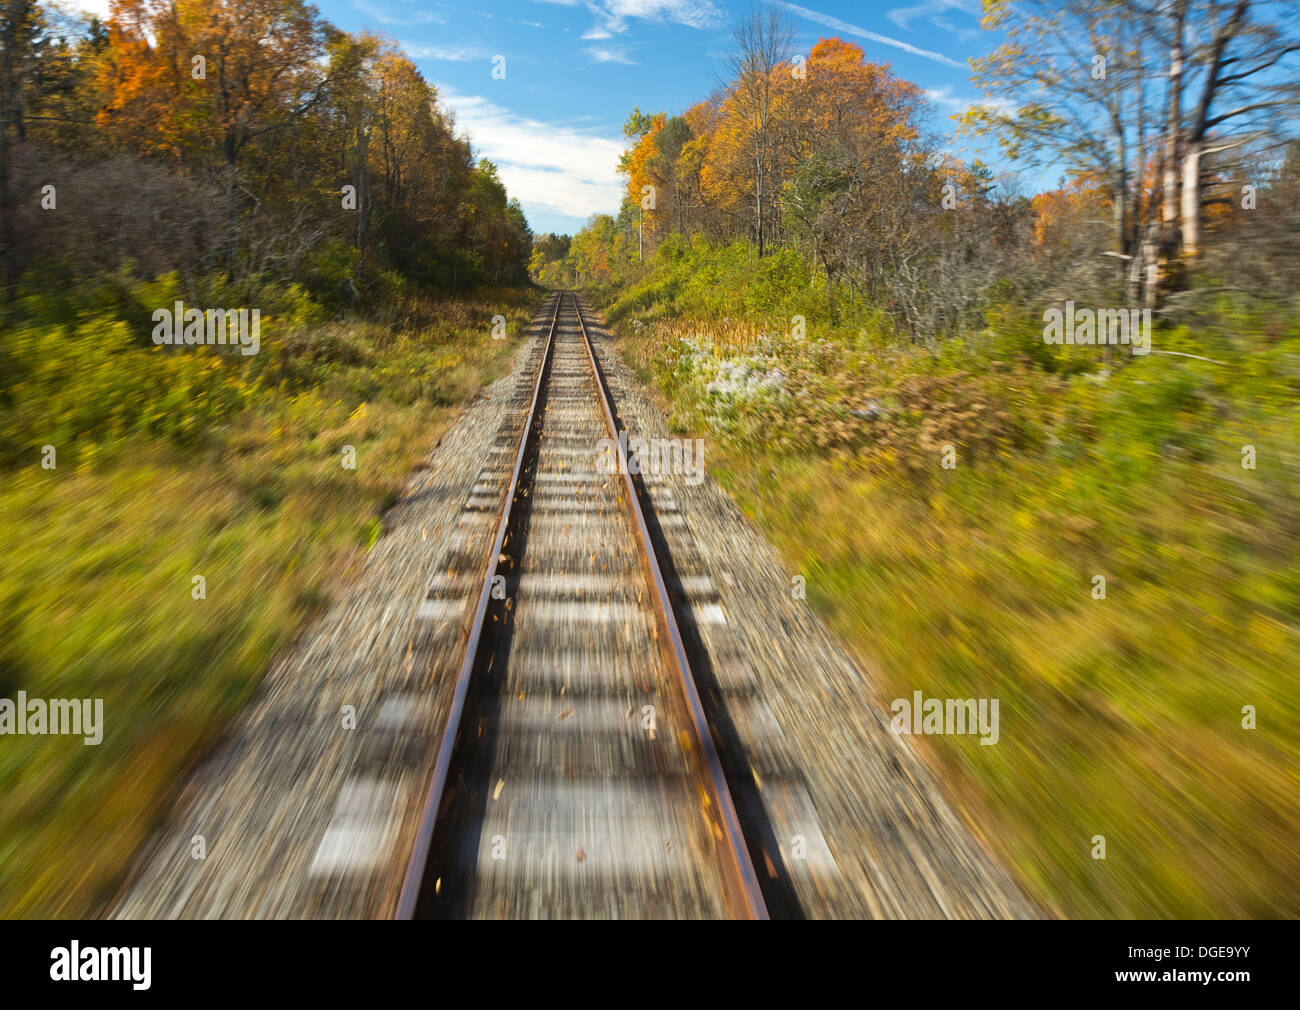 Train tracks in motion blur with autumn scene in background - Stock Image